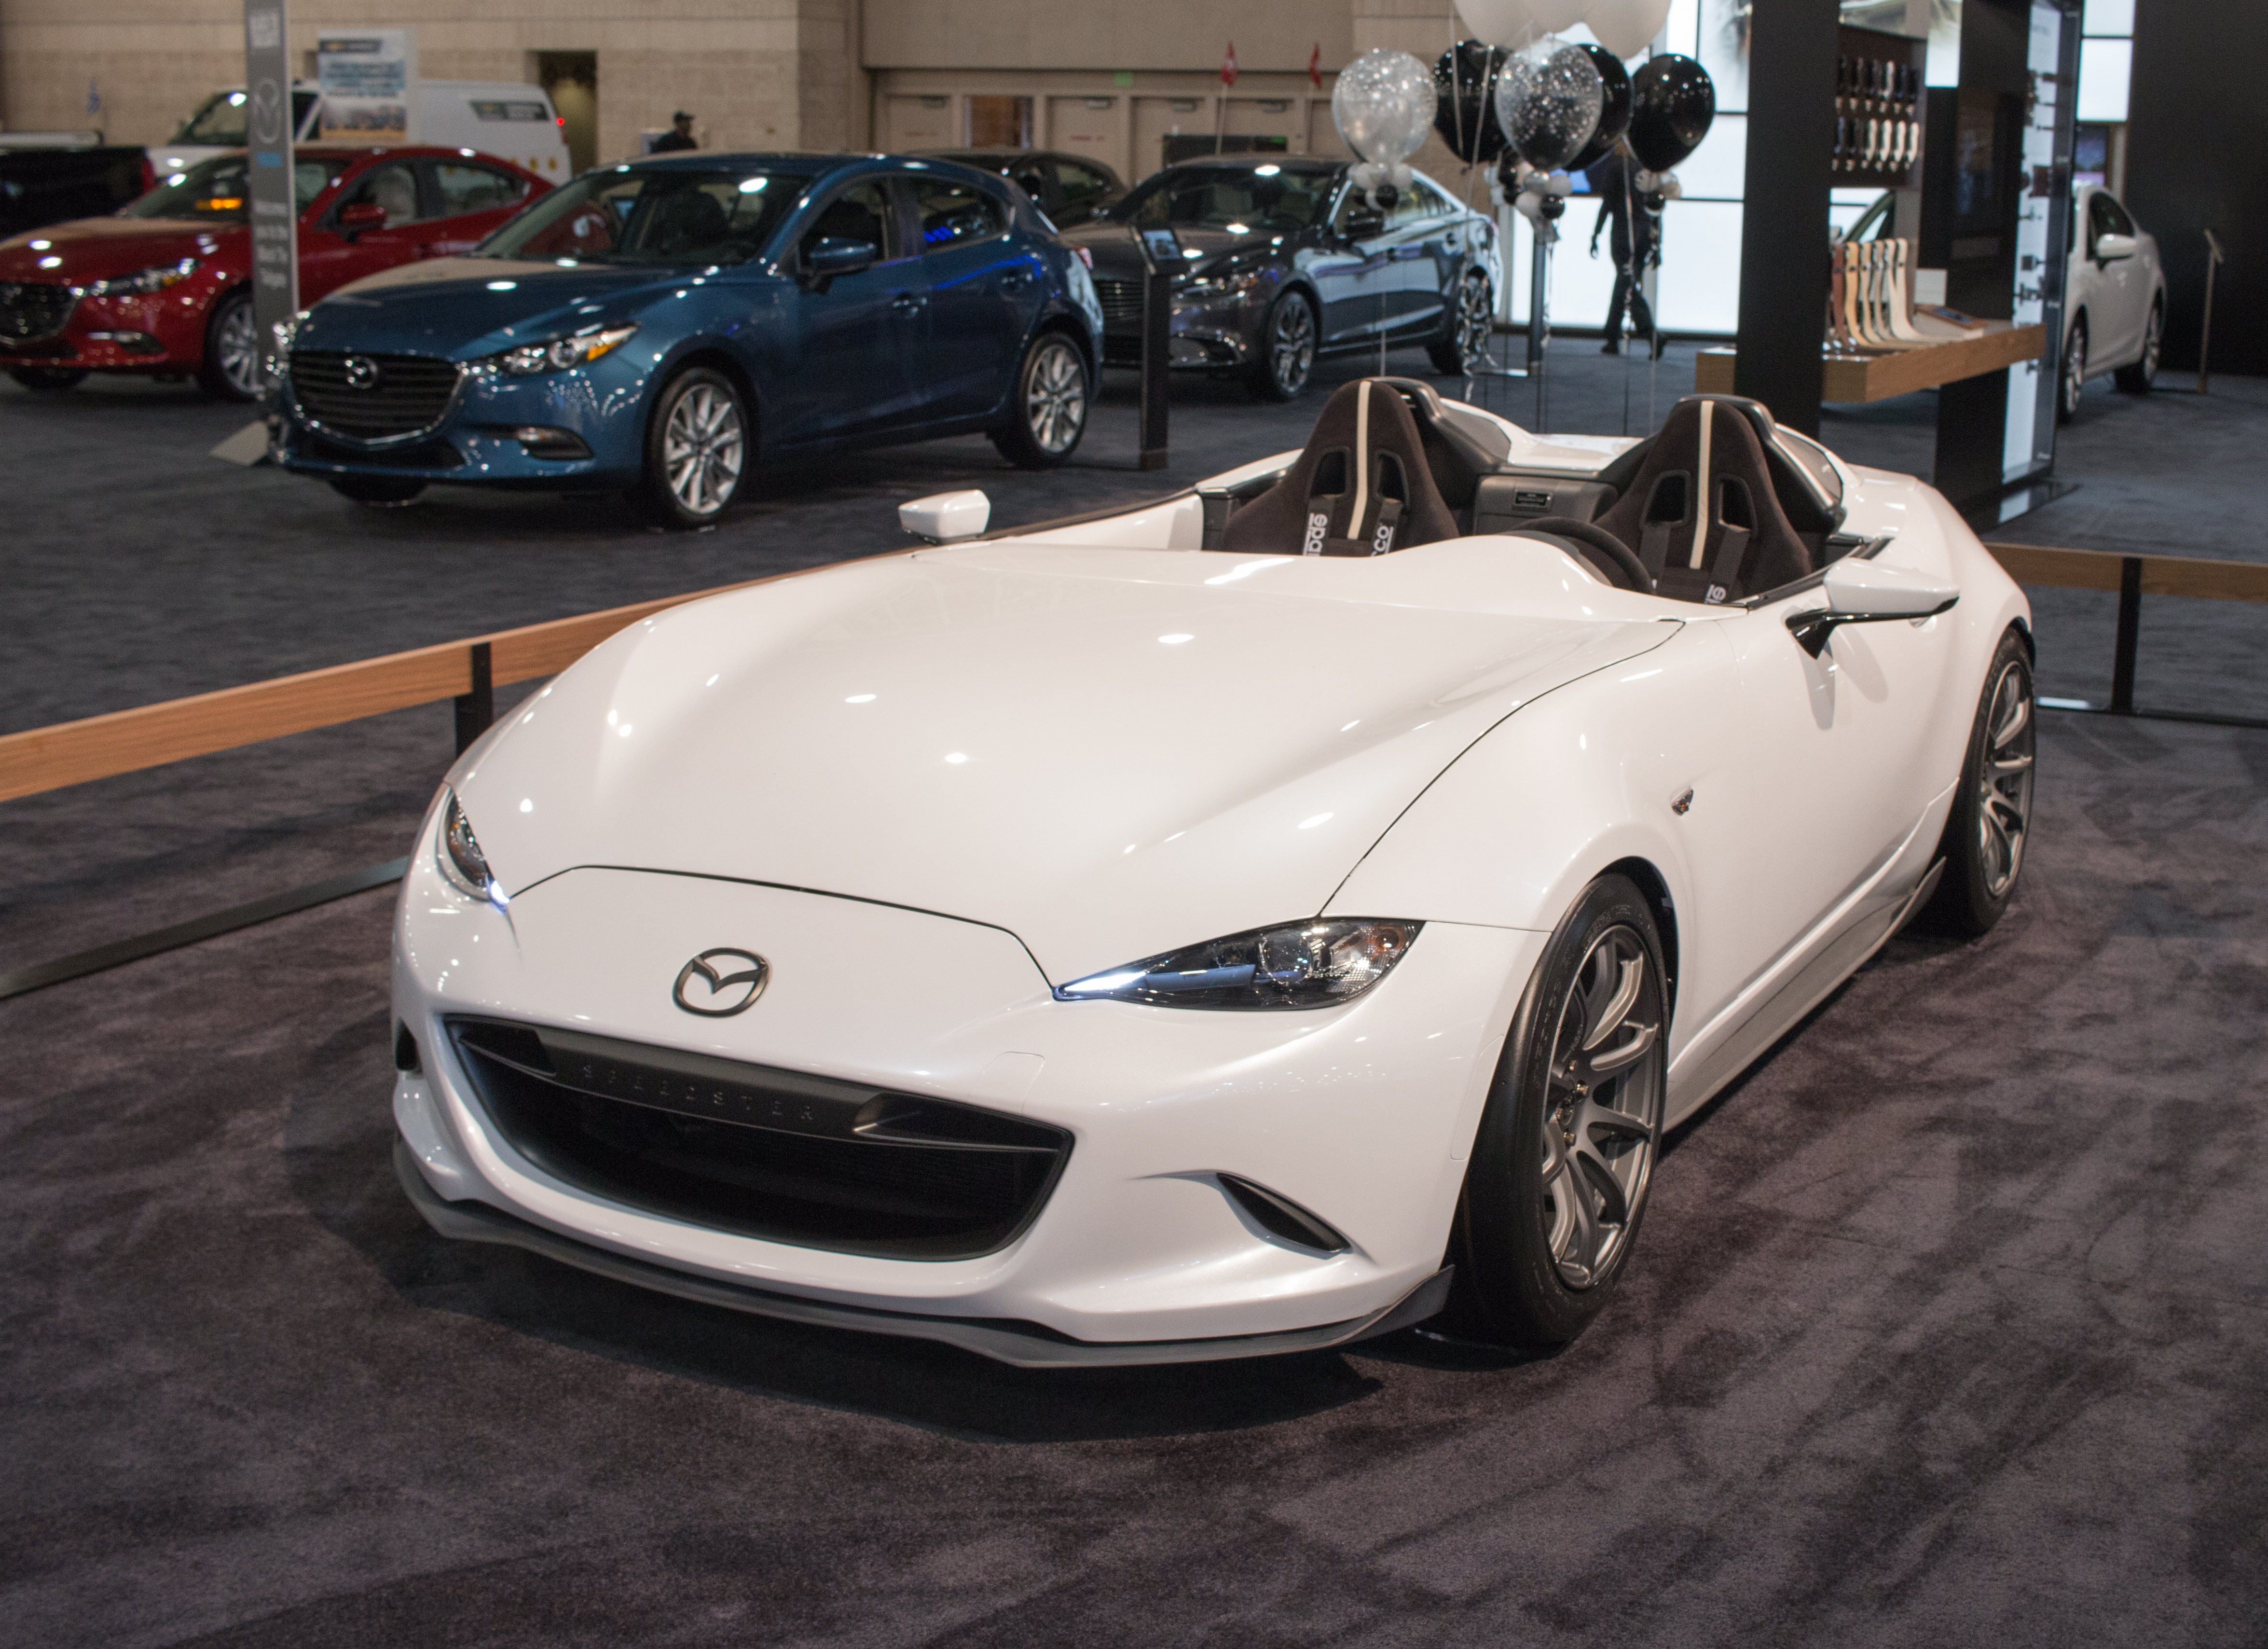 philly_auto_show_2017-1-44